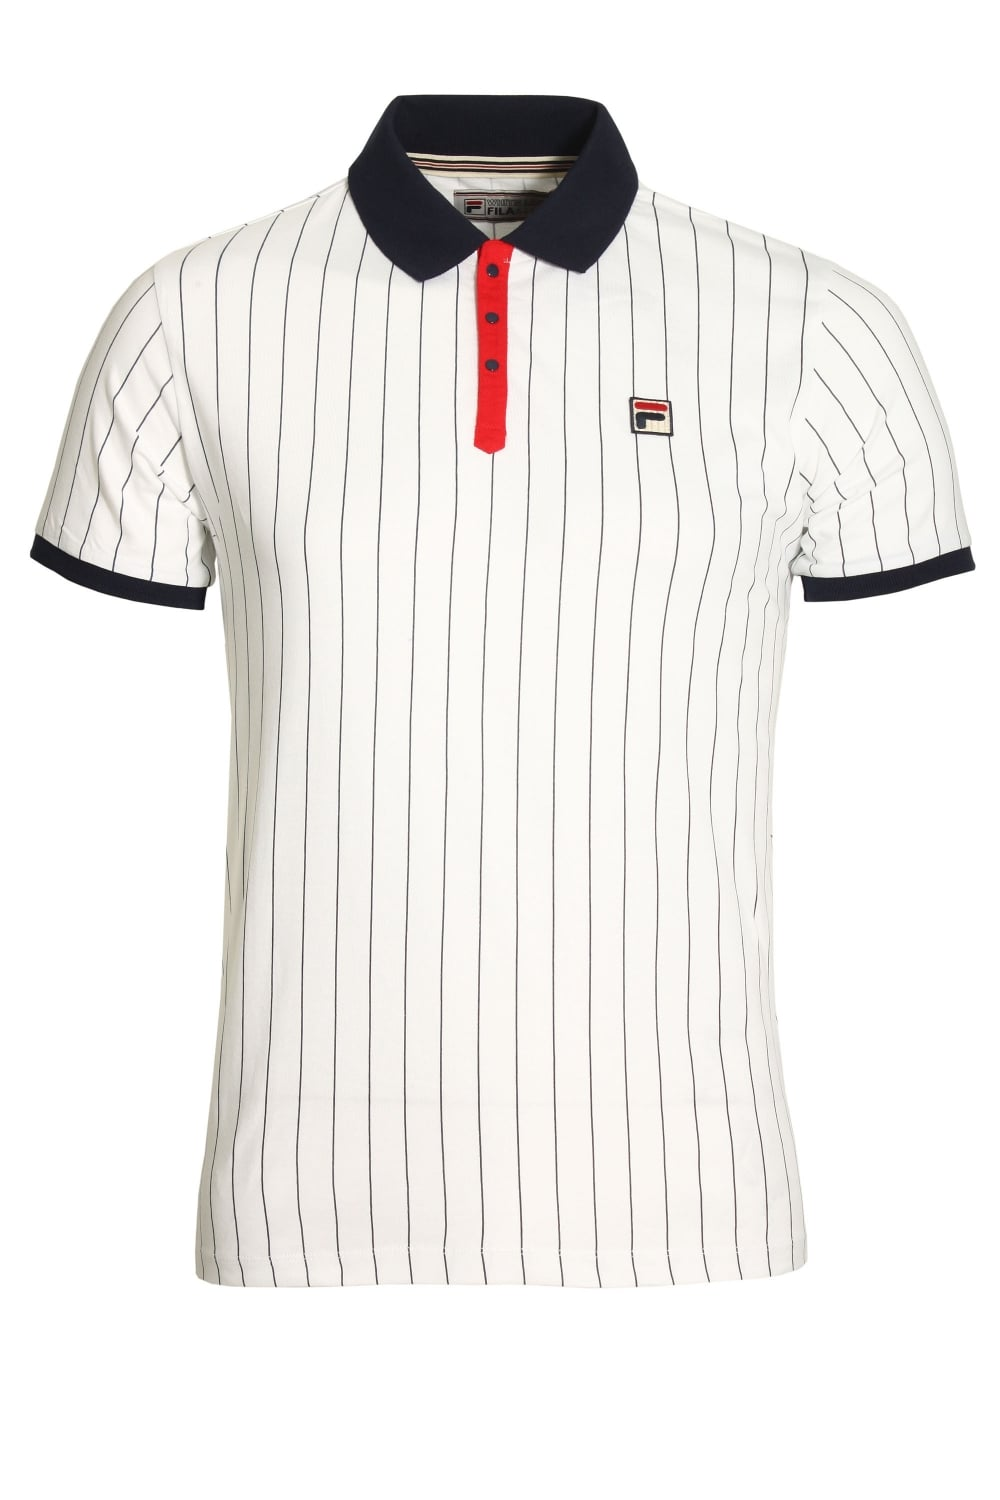 FILA VINTAGE BB1 Classic Stripe Polo Shirt | White